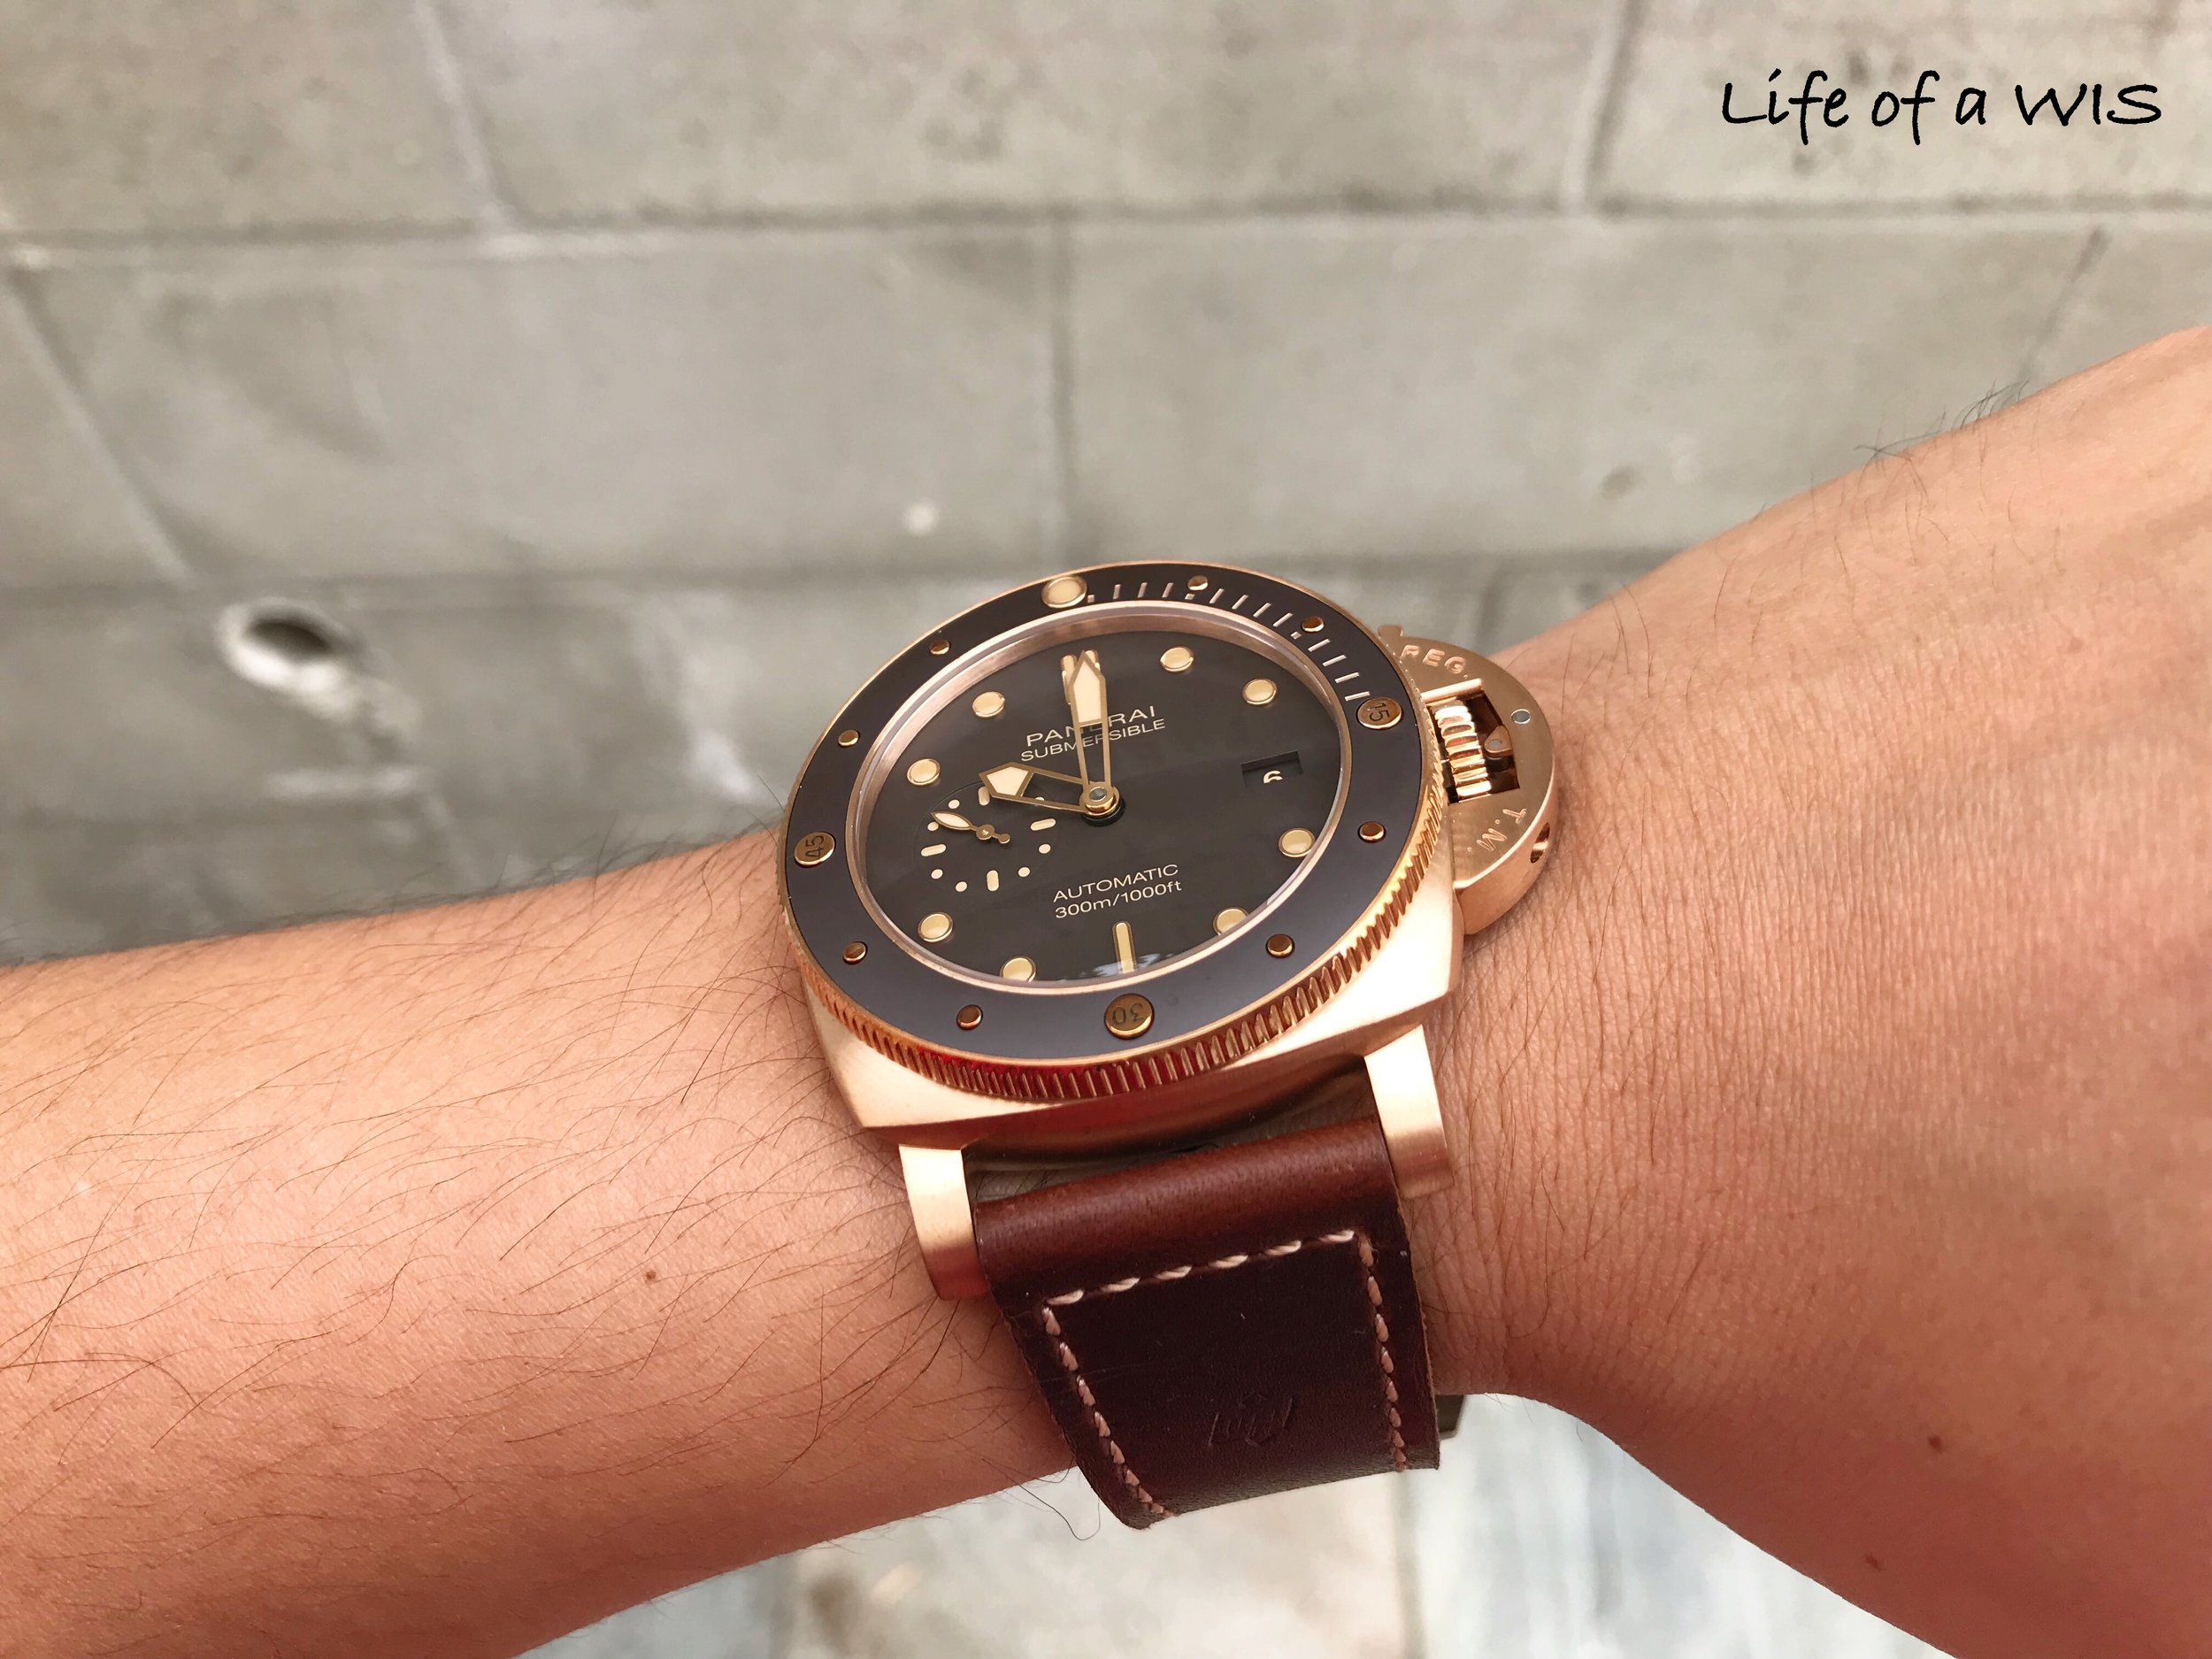 PAM 968… beautiful rose gold tone on the bronze case before any patina has developed.